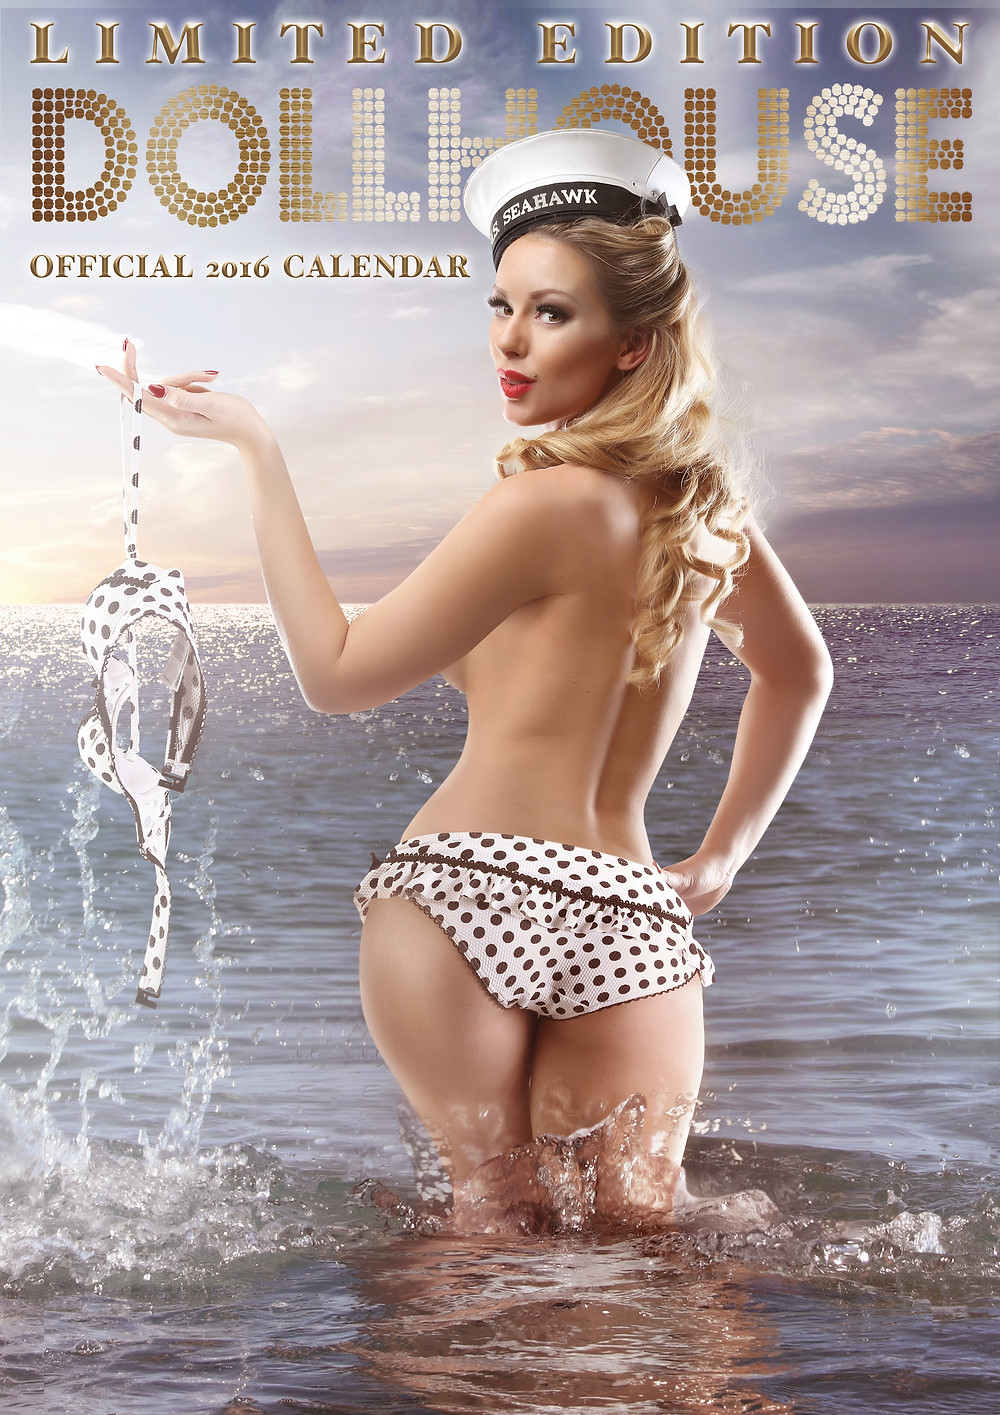 DollHouse Photography 2016 Pinup Calendar - Cover Girl Heather Valentine Pinup Model